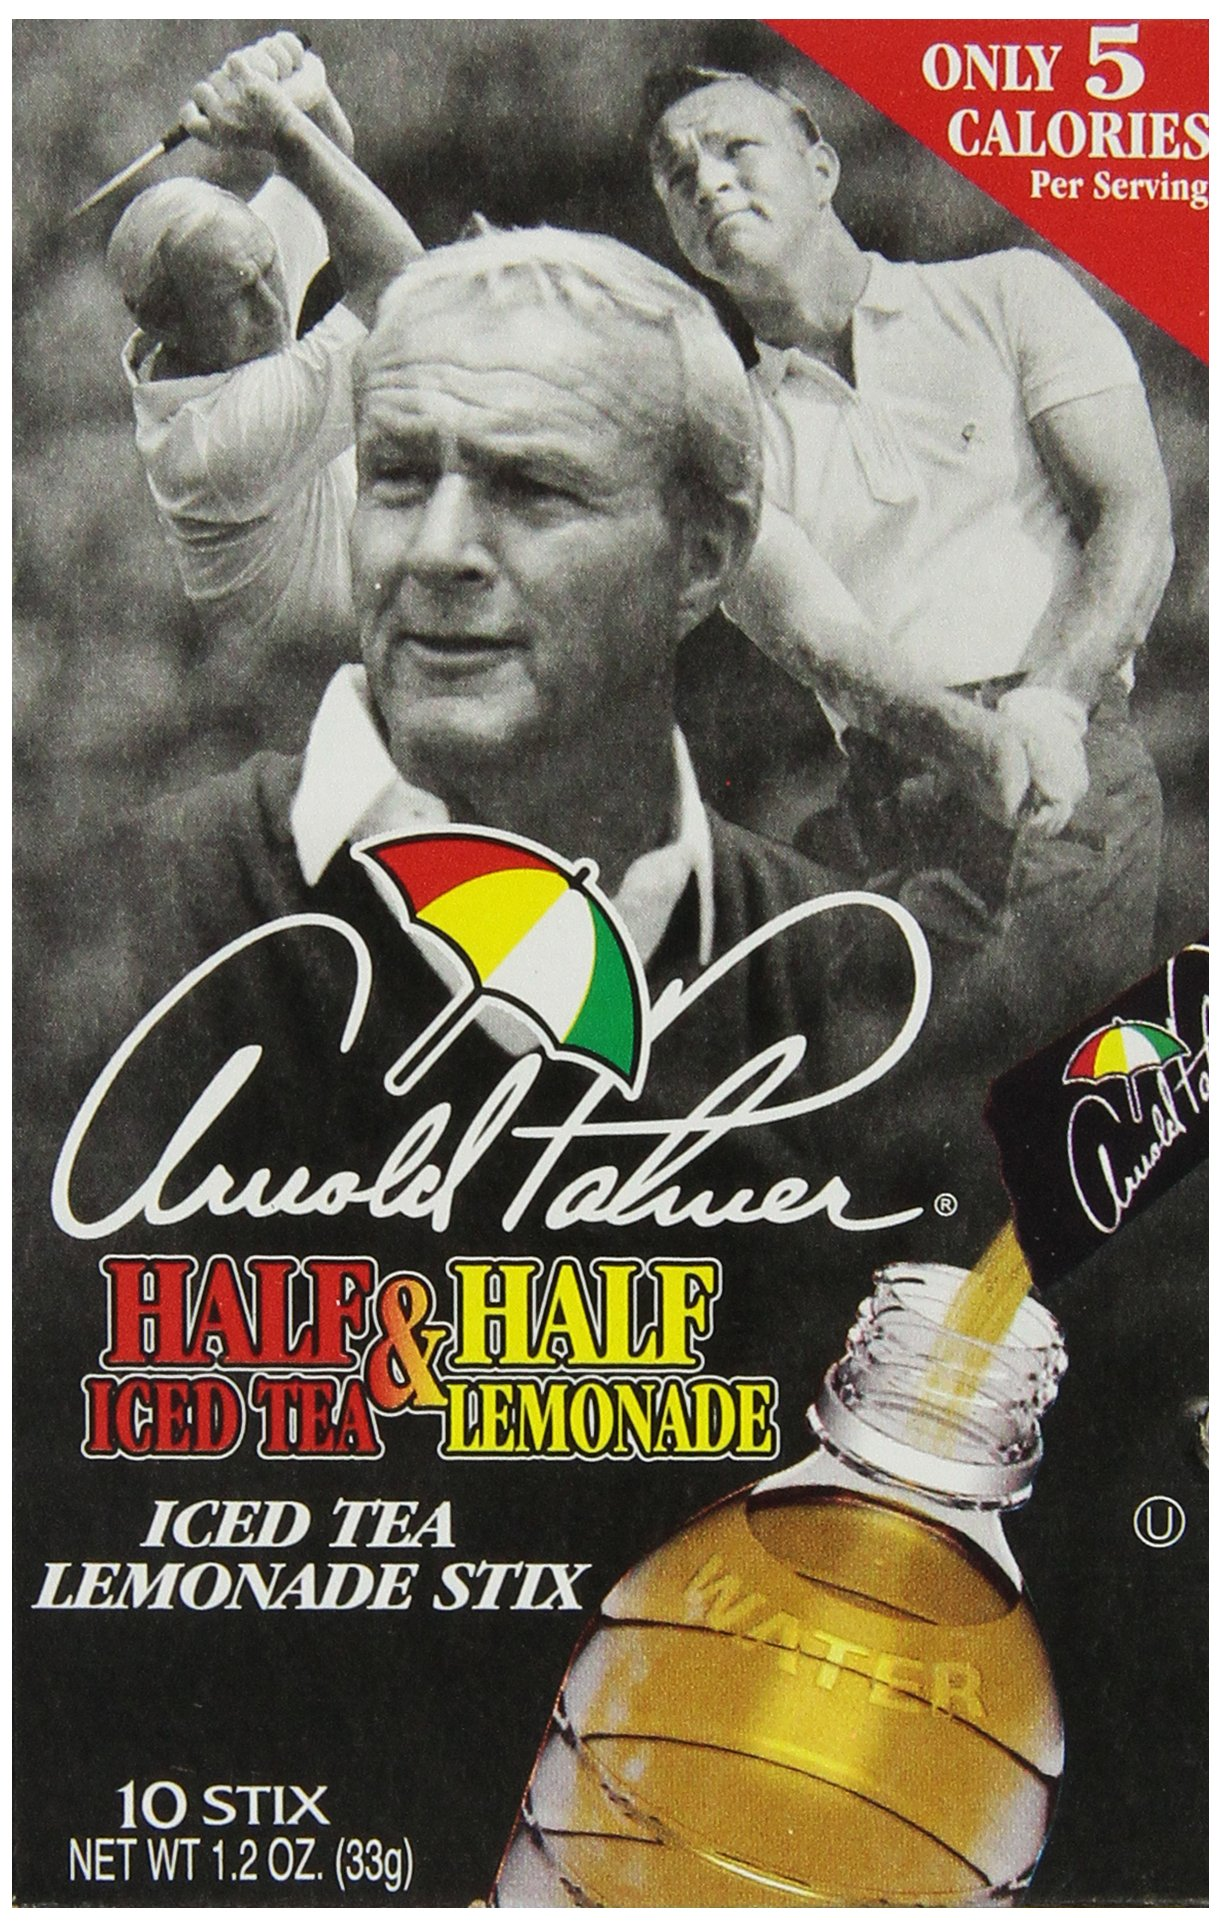 AriZona Arnold Palmer Half Lemonade Half Iced Tea Stix, 10 Count Per Box (Pack of 6), Low Calorie Single Serving Drink Powder Packets, Just Add Water for a Deliciously Refreshing Iced Tea Beverage by Arizona (Image #1)